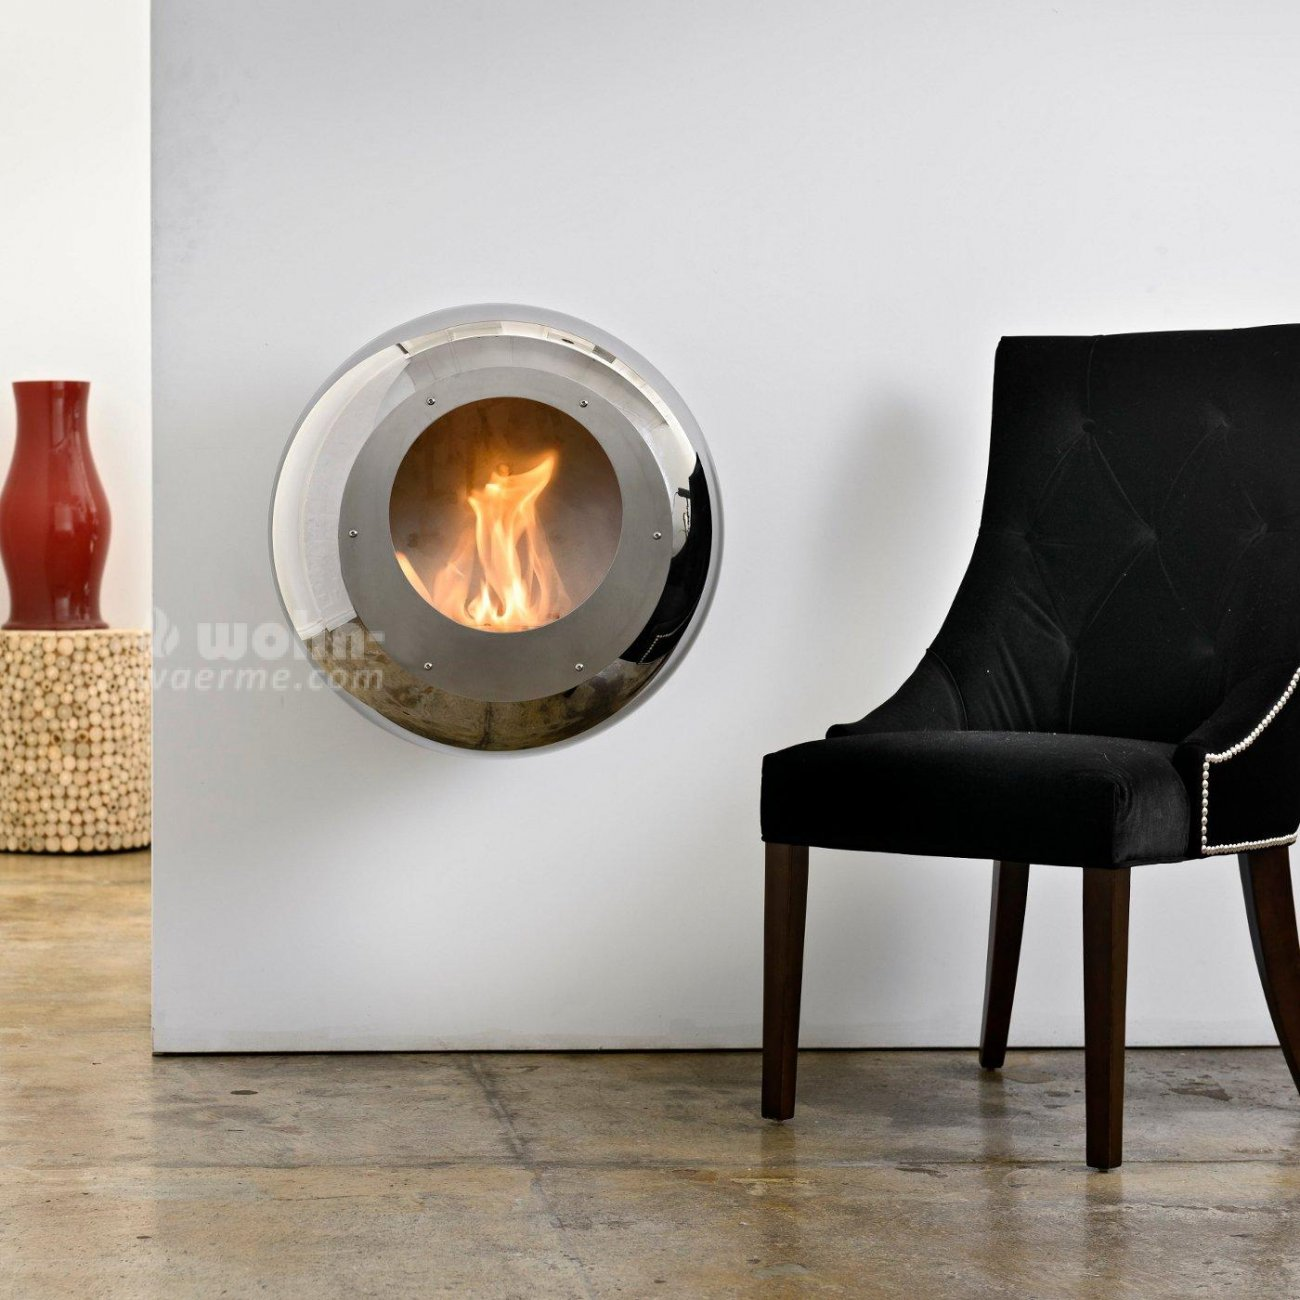 cocoon fires vellum design ethanolkamin f r die wand. Black Bedroom Furniture Sets. Home Design Ideas